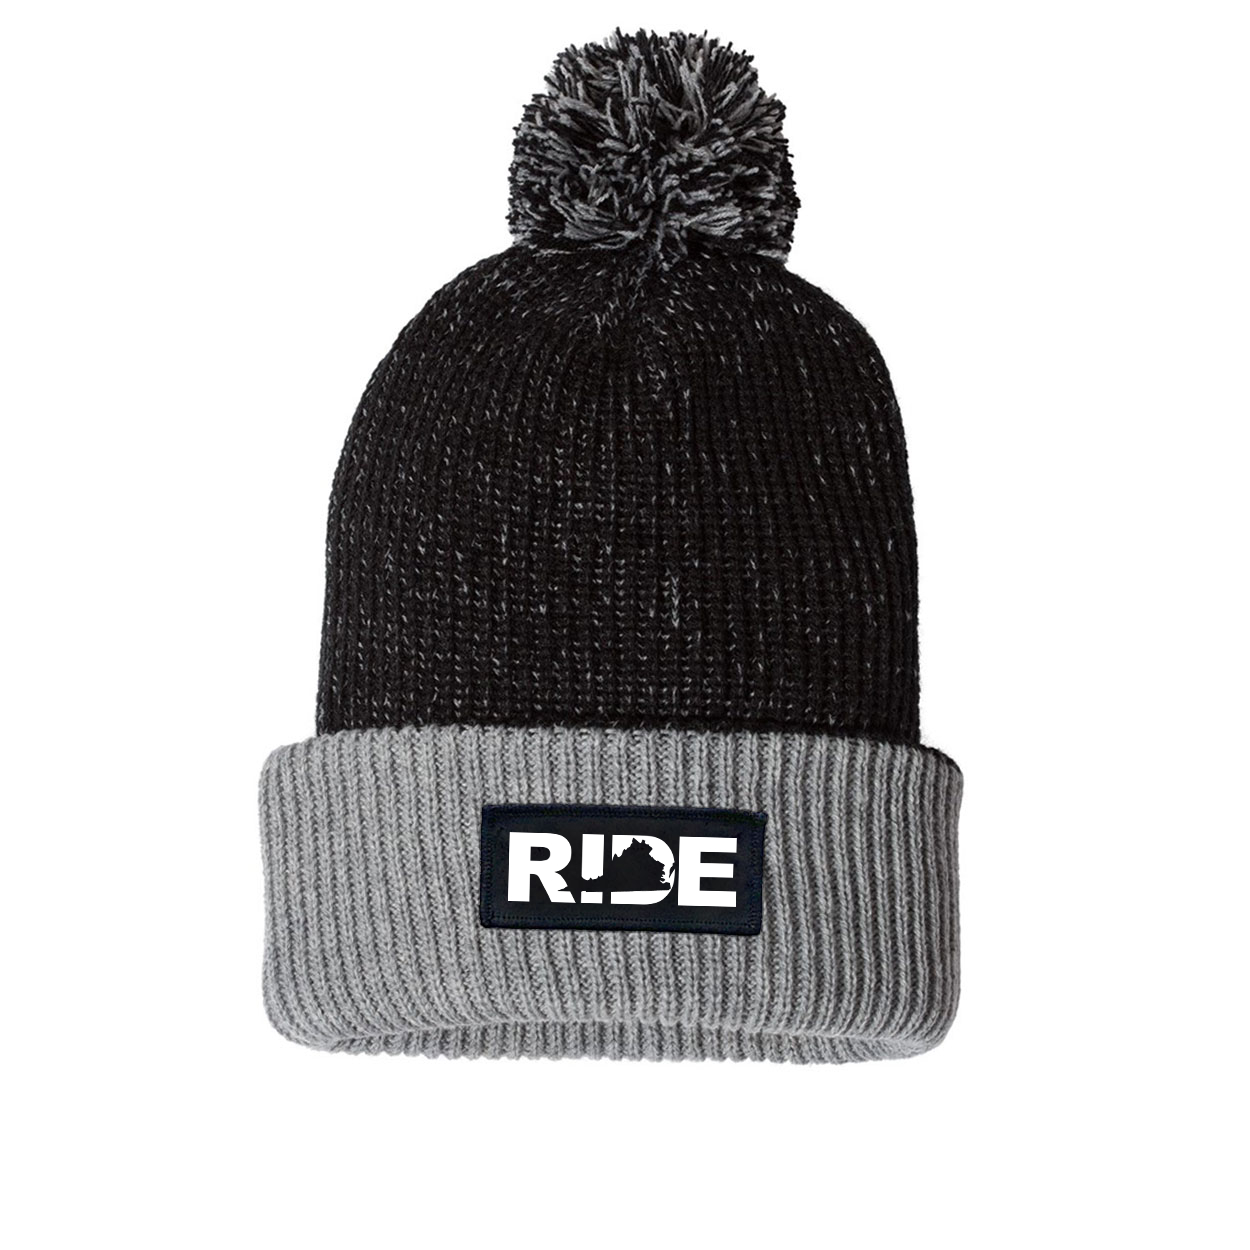 Ride Virginia Night Out Woven Patch Roll Up Pom Knit Beanie Black/Gray (White Logo)